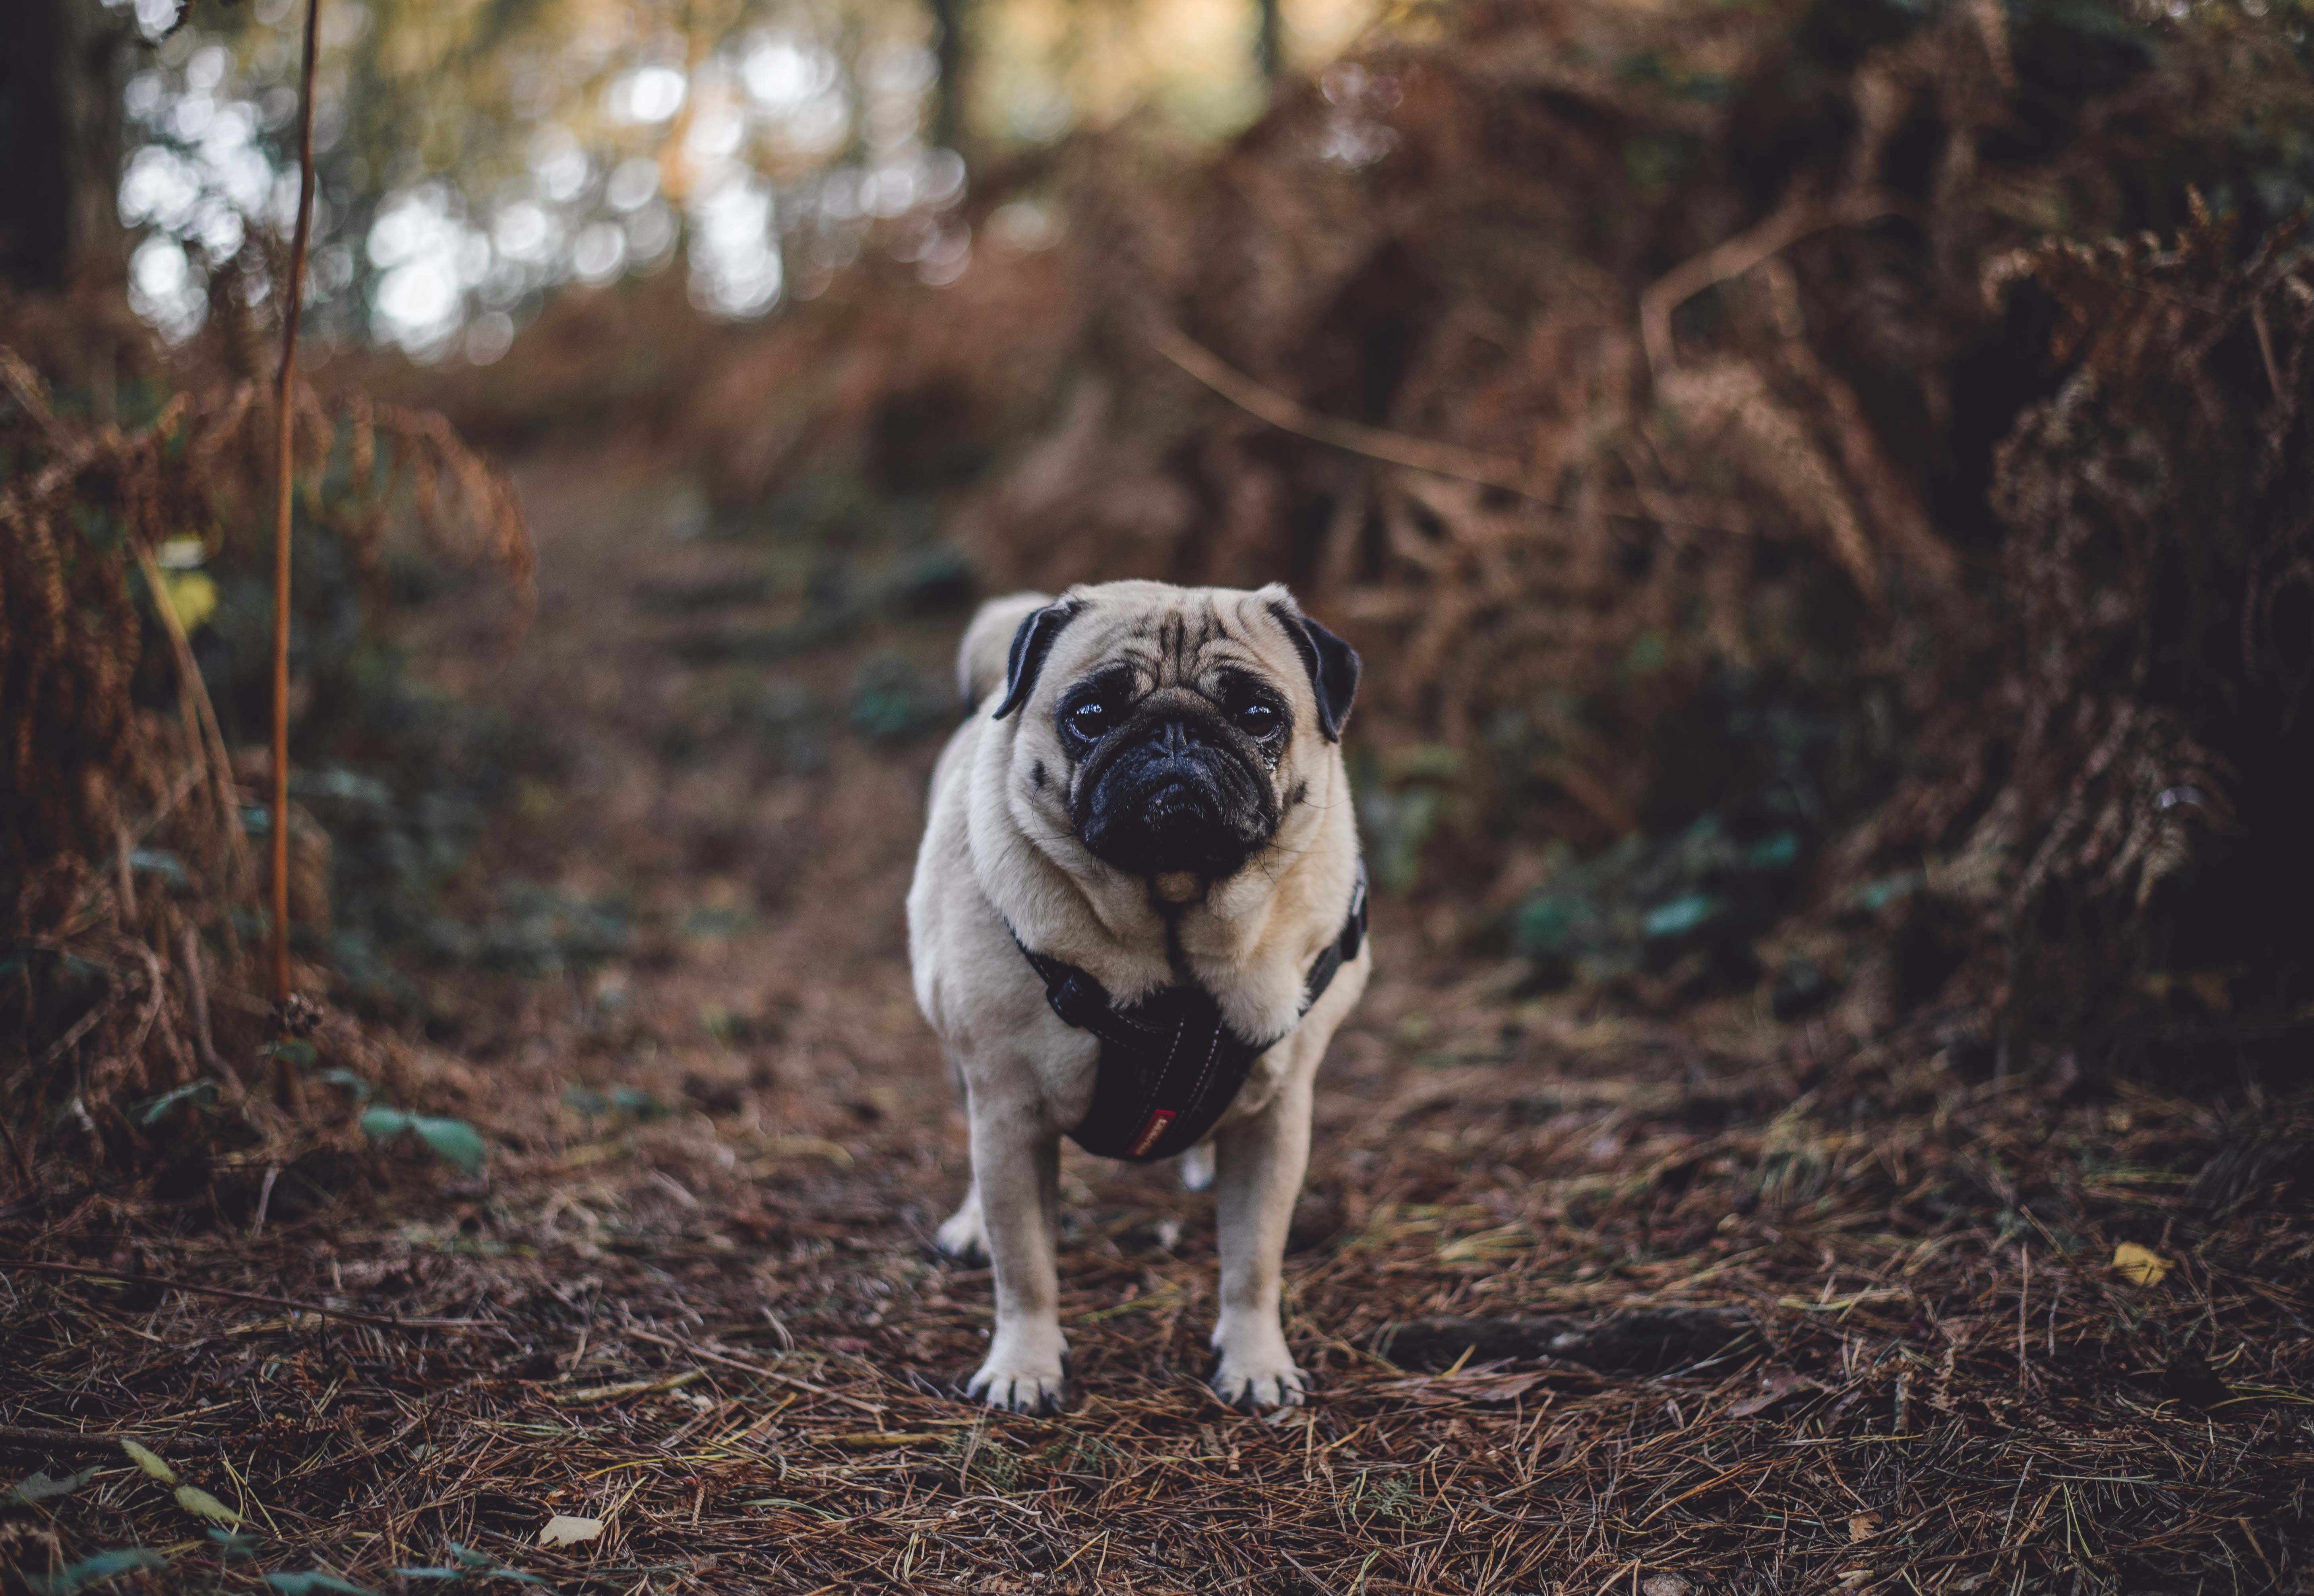 81600 download wallpaper Animals, Pug, Dog, Stroll screensavers and pictures for free